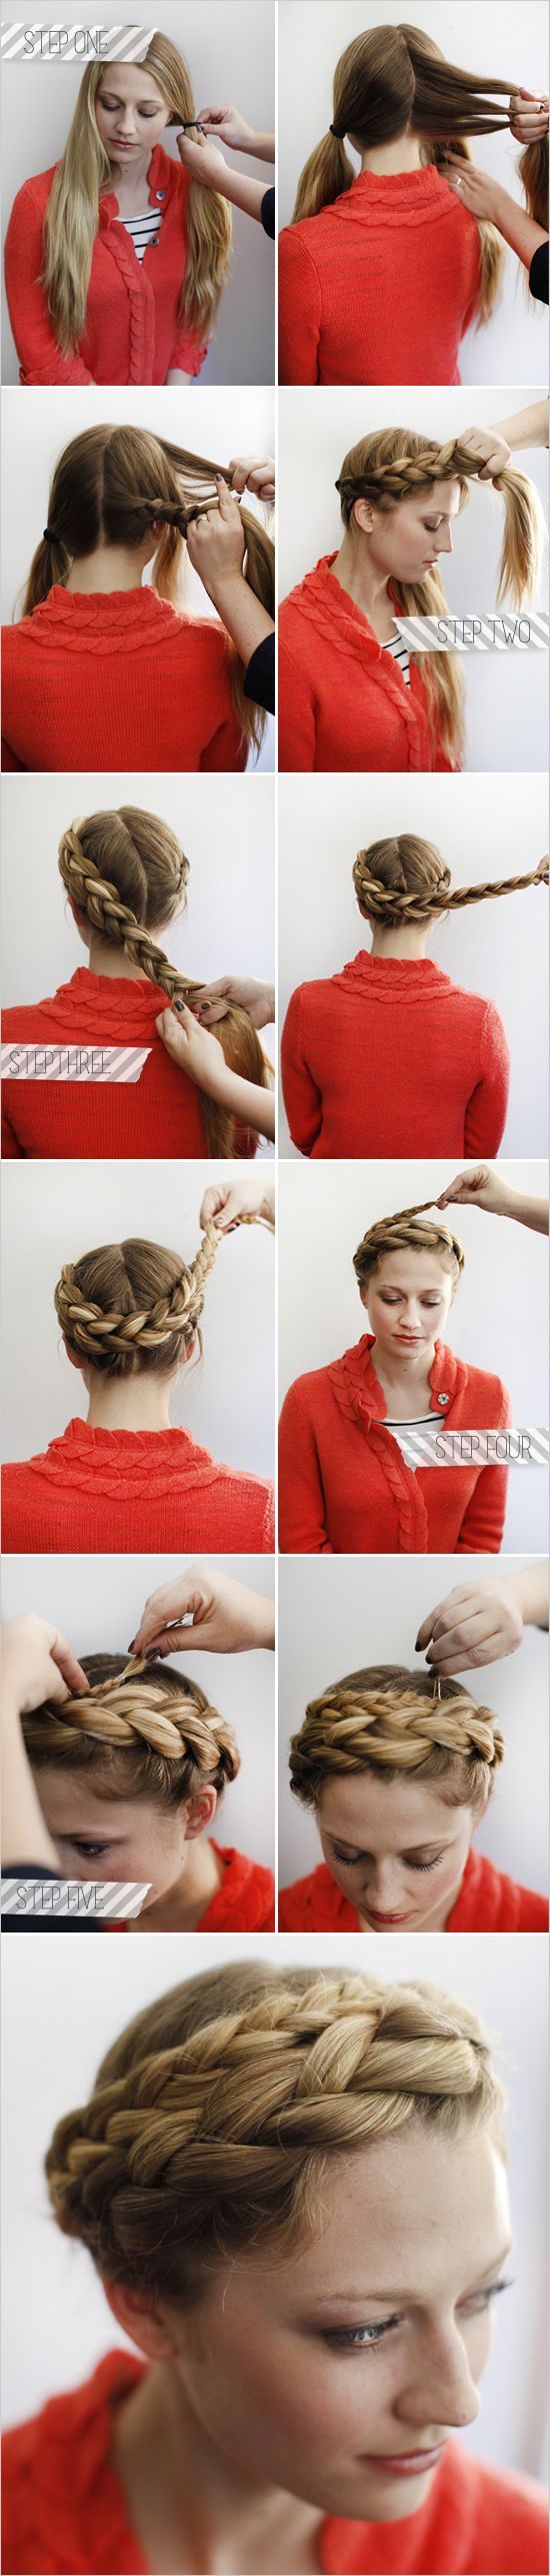 hair braid halo how to!  i don't know if my hair in all it's layers will do it, but i'd sure like to try!